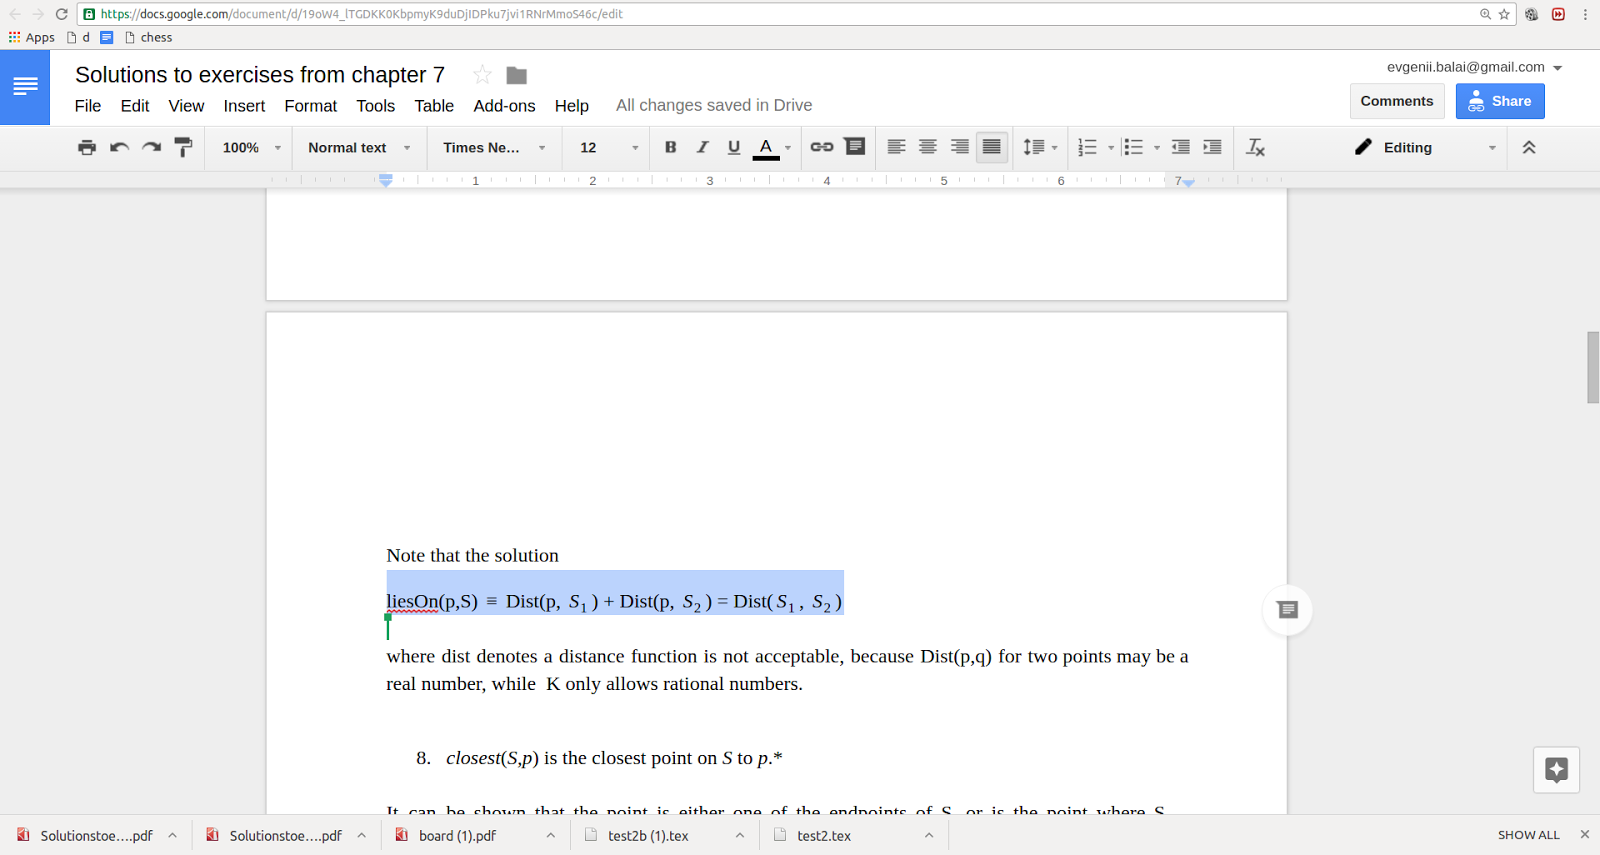 Issue with italic font and math equations in google docs